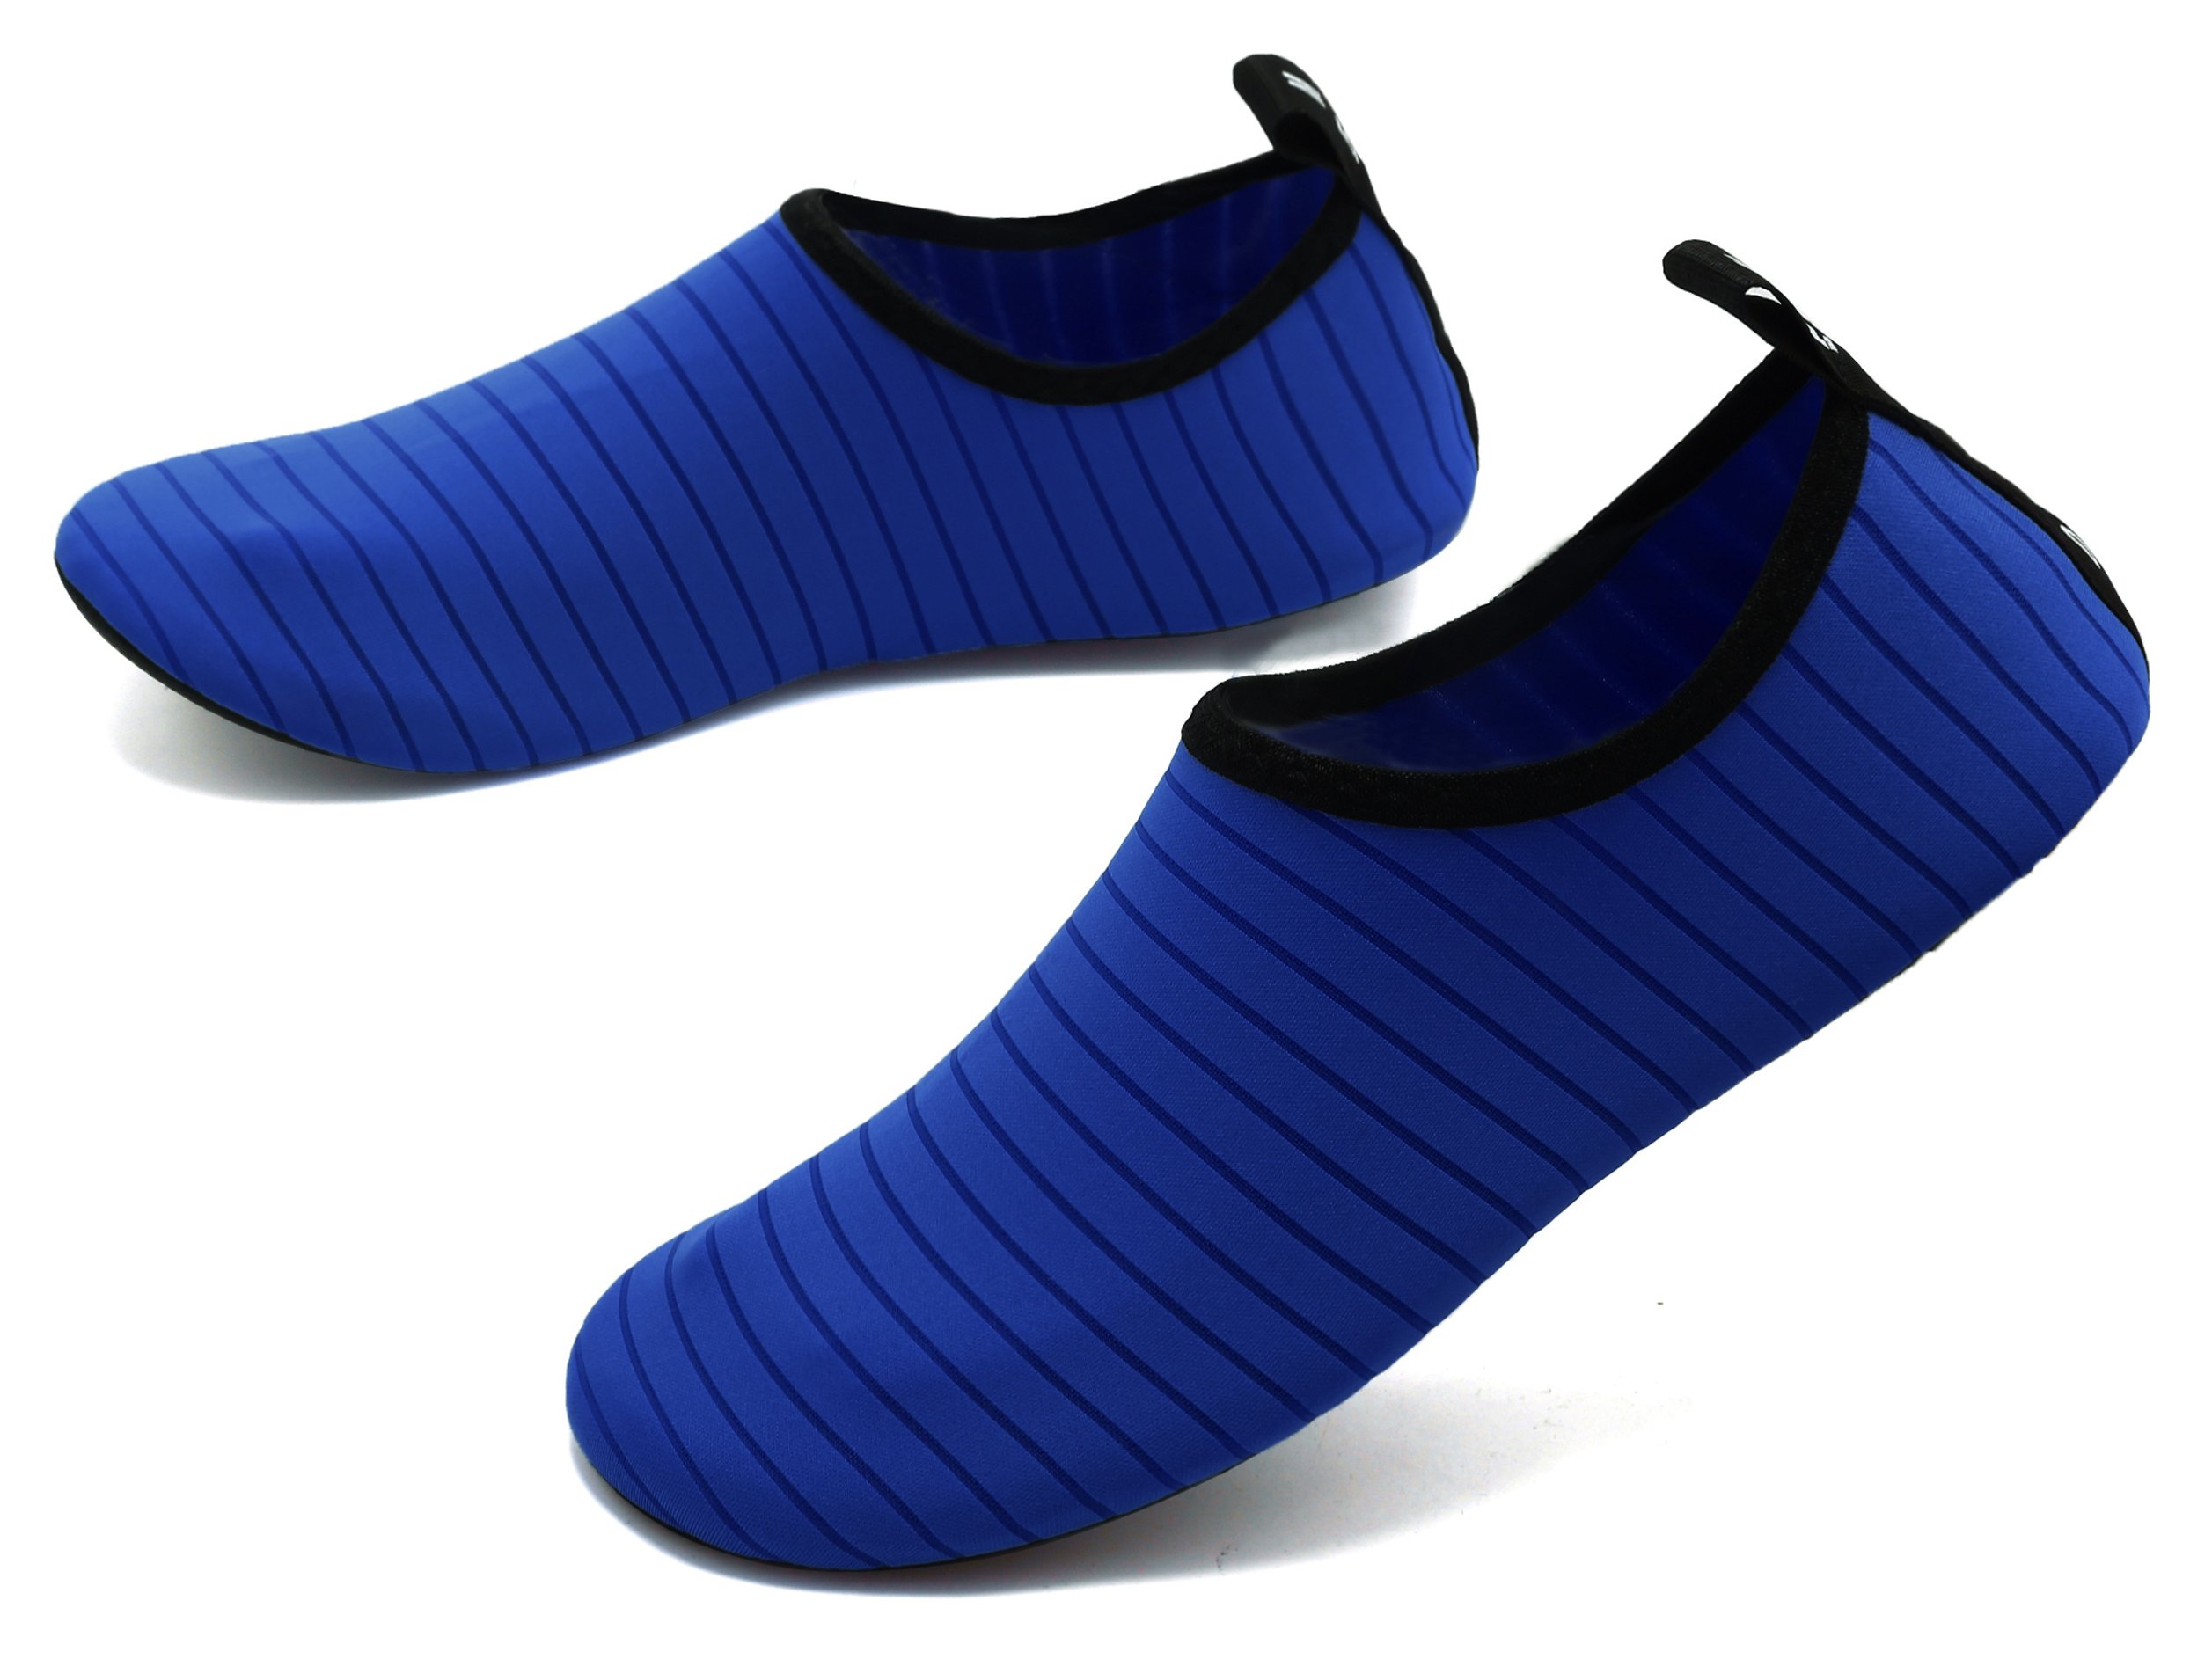 GUPYING Womens and Mens Summer Outdoor Water Shoes Aqua Socks for Beach Swim Surf Yoga Exercise (M(W:7.5-8.5,M:6.5-7.5), Blue) 38-39 by GUPYING (Image #3)